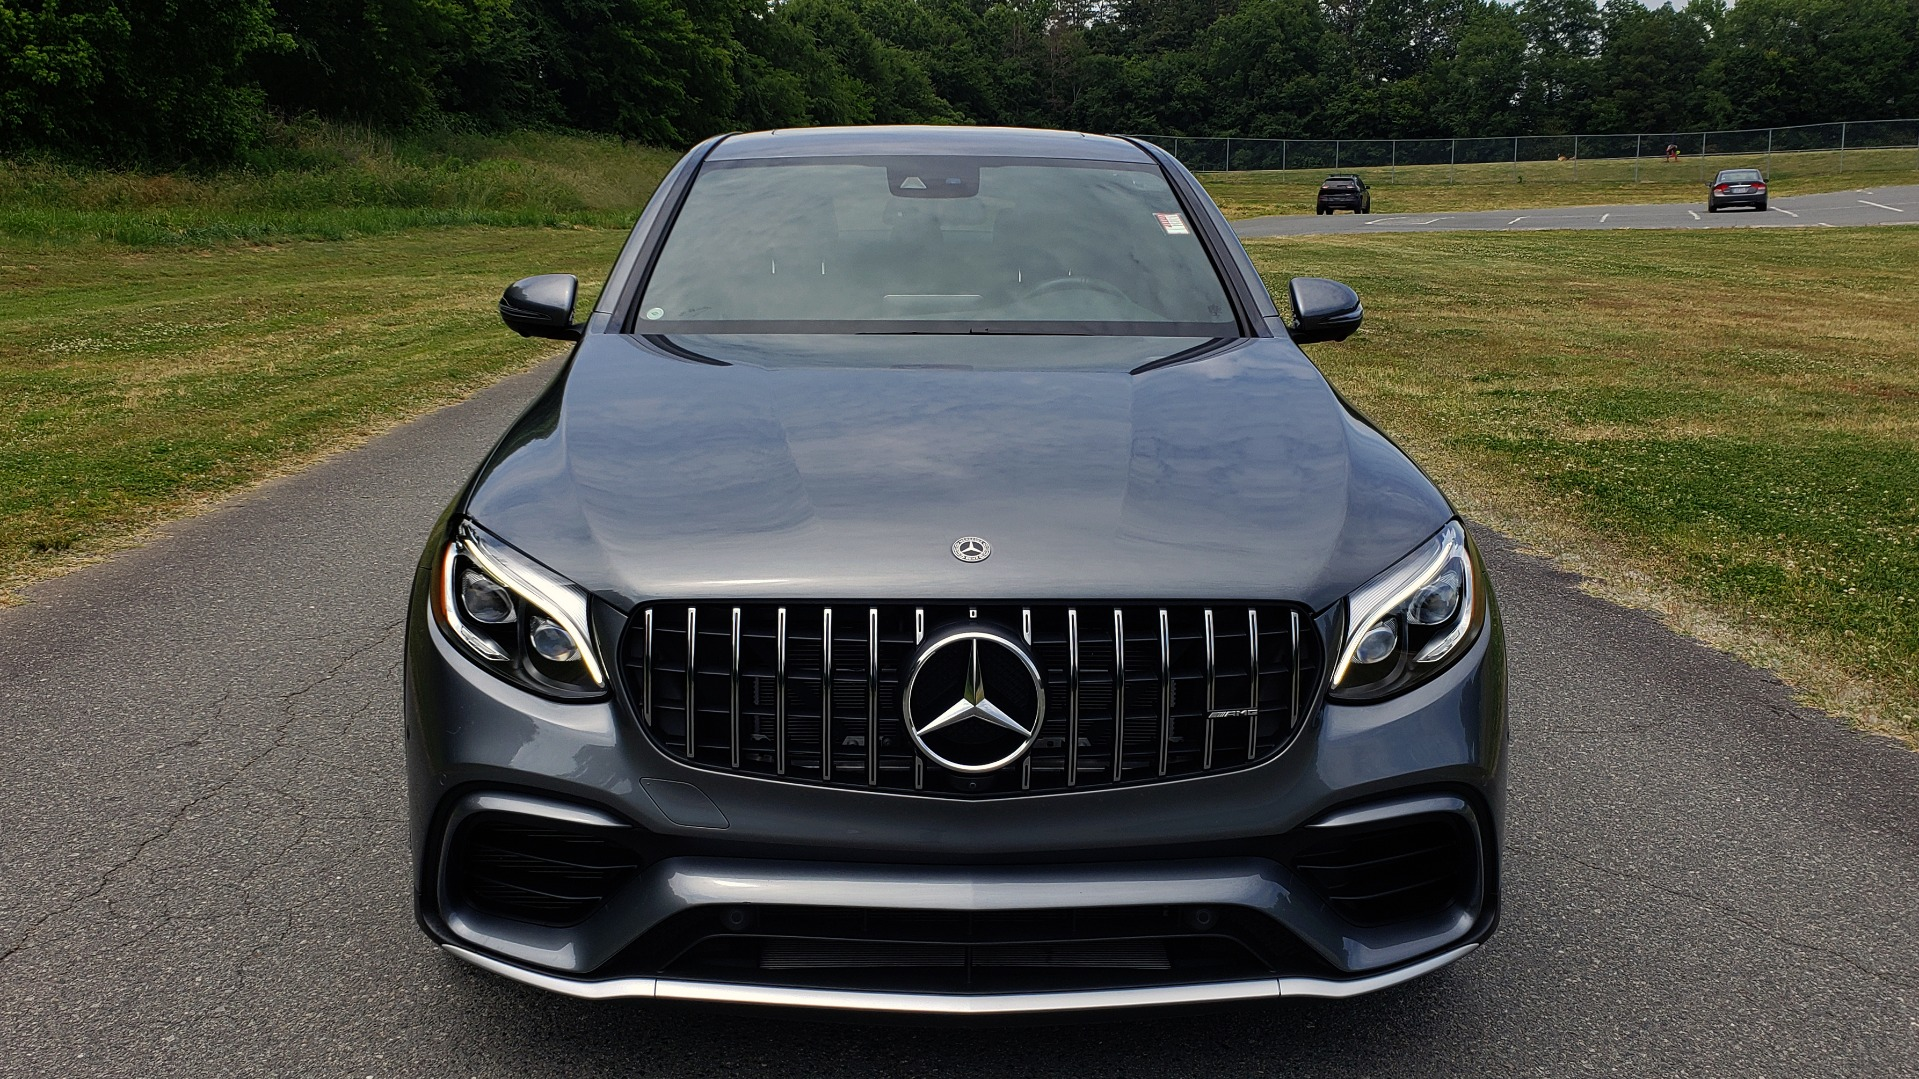 Used 2019 Mercedes-Benz GLC AMG 63 S 4MATIC COUPE / NAV / TRACK PACE APP / AMG PERF EXH / MULTIMEDIA for sale Sold at Formula Imports in Charlotte NC 28227 28